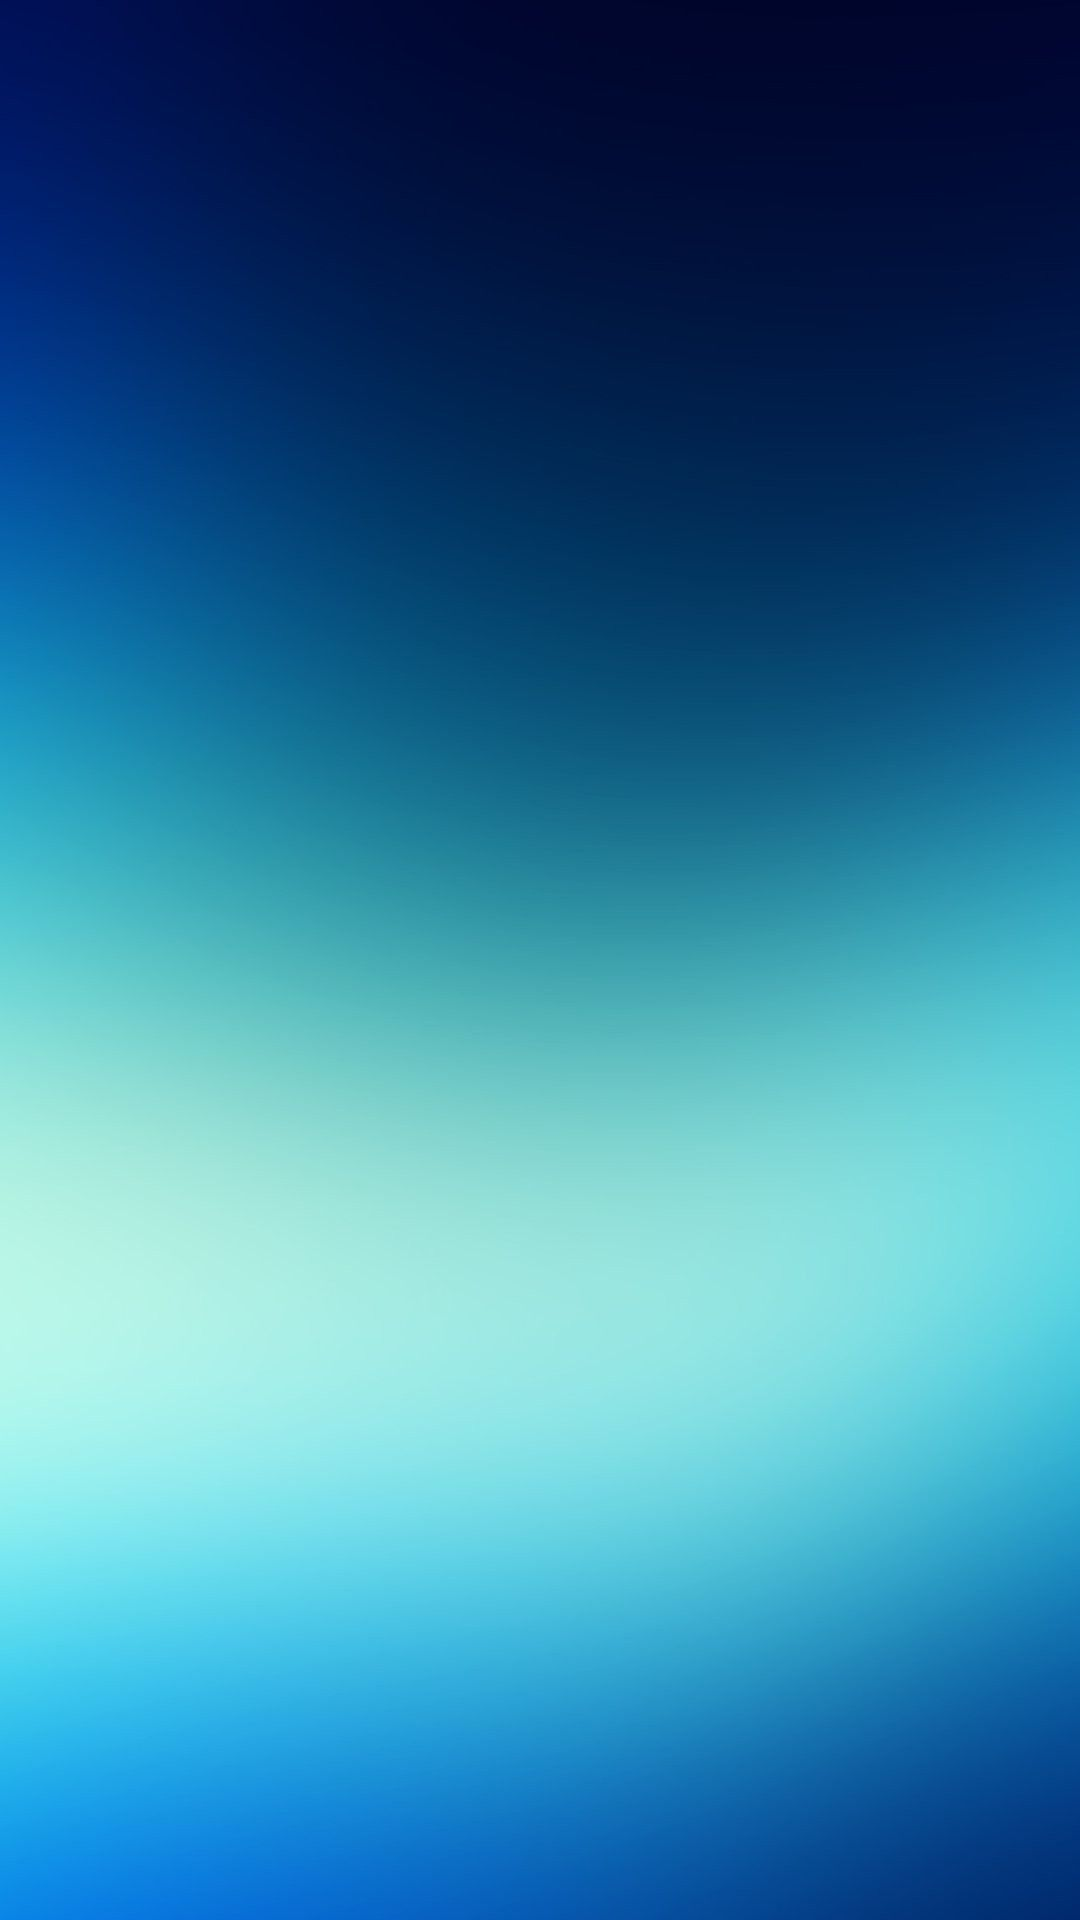 Blue blur iphone 6 plus wallpaper 26343 abstract iphone for Wallpaper sites